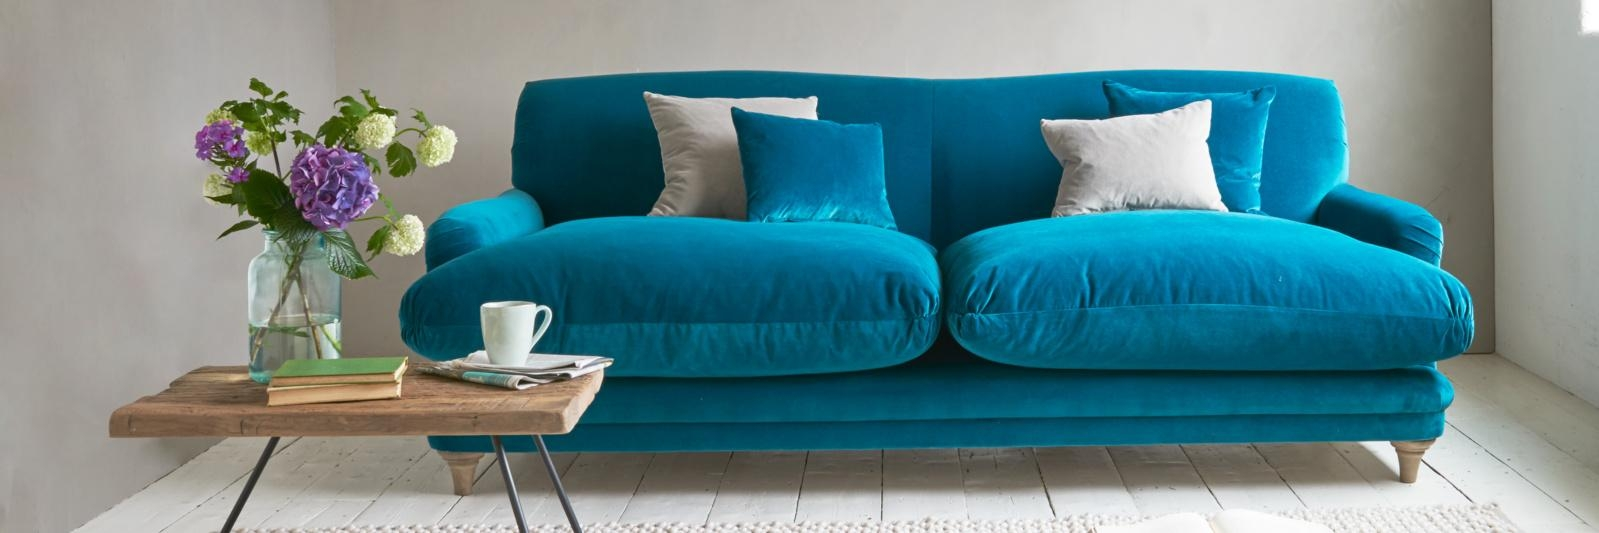 Sofas Center : Teal Blue Sofa Navy Couch Designs Sofas Pillowsteal Intended For Blue Sofas (View 4 of 20)